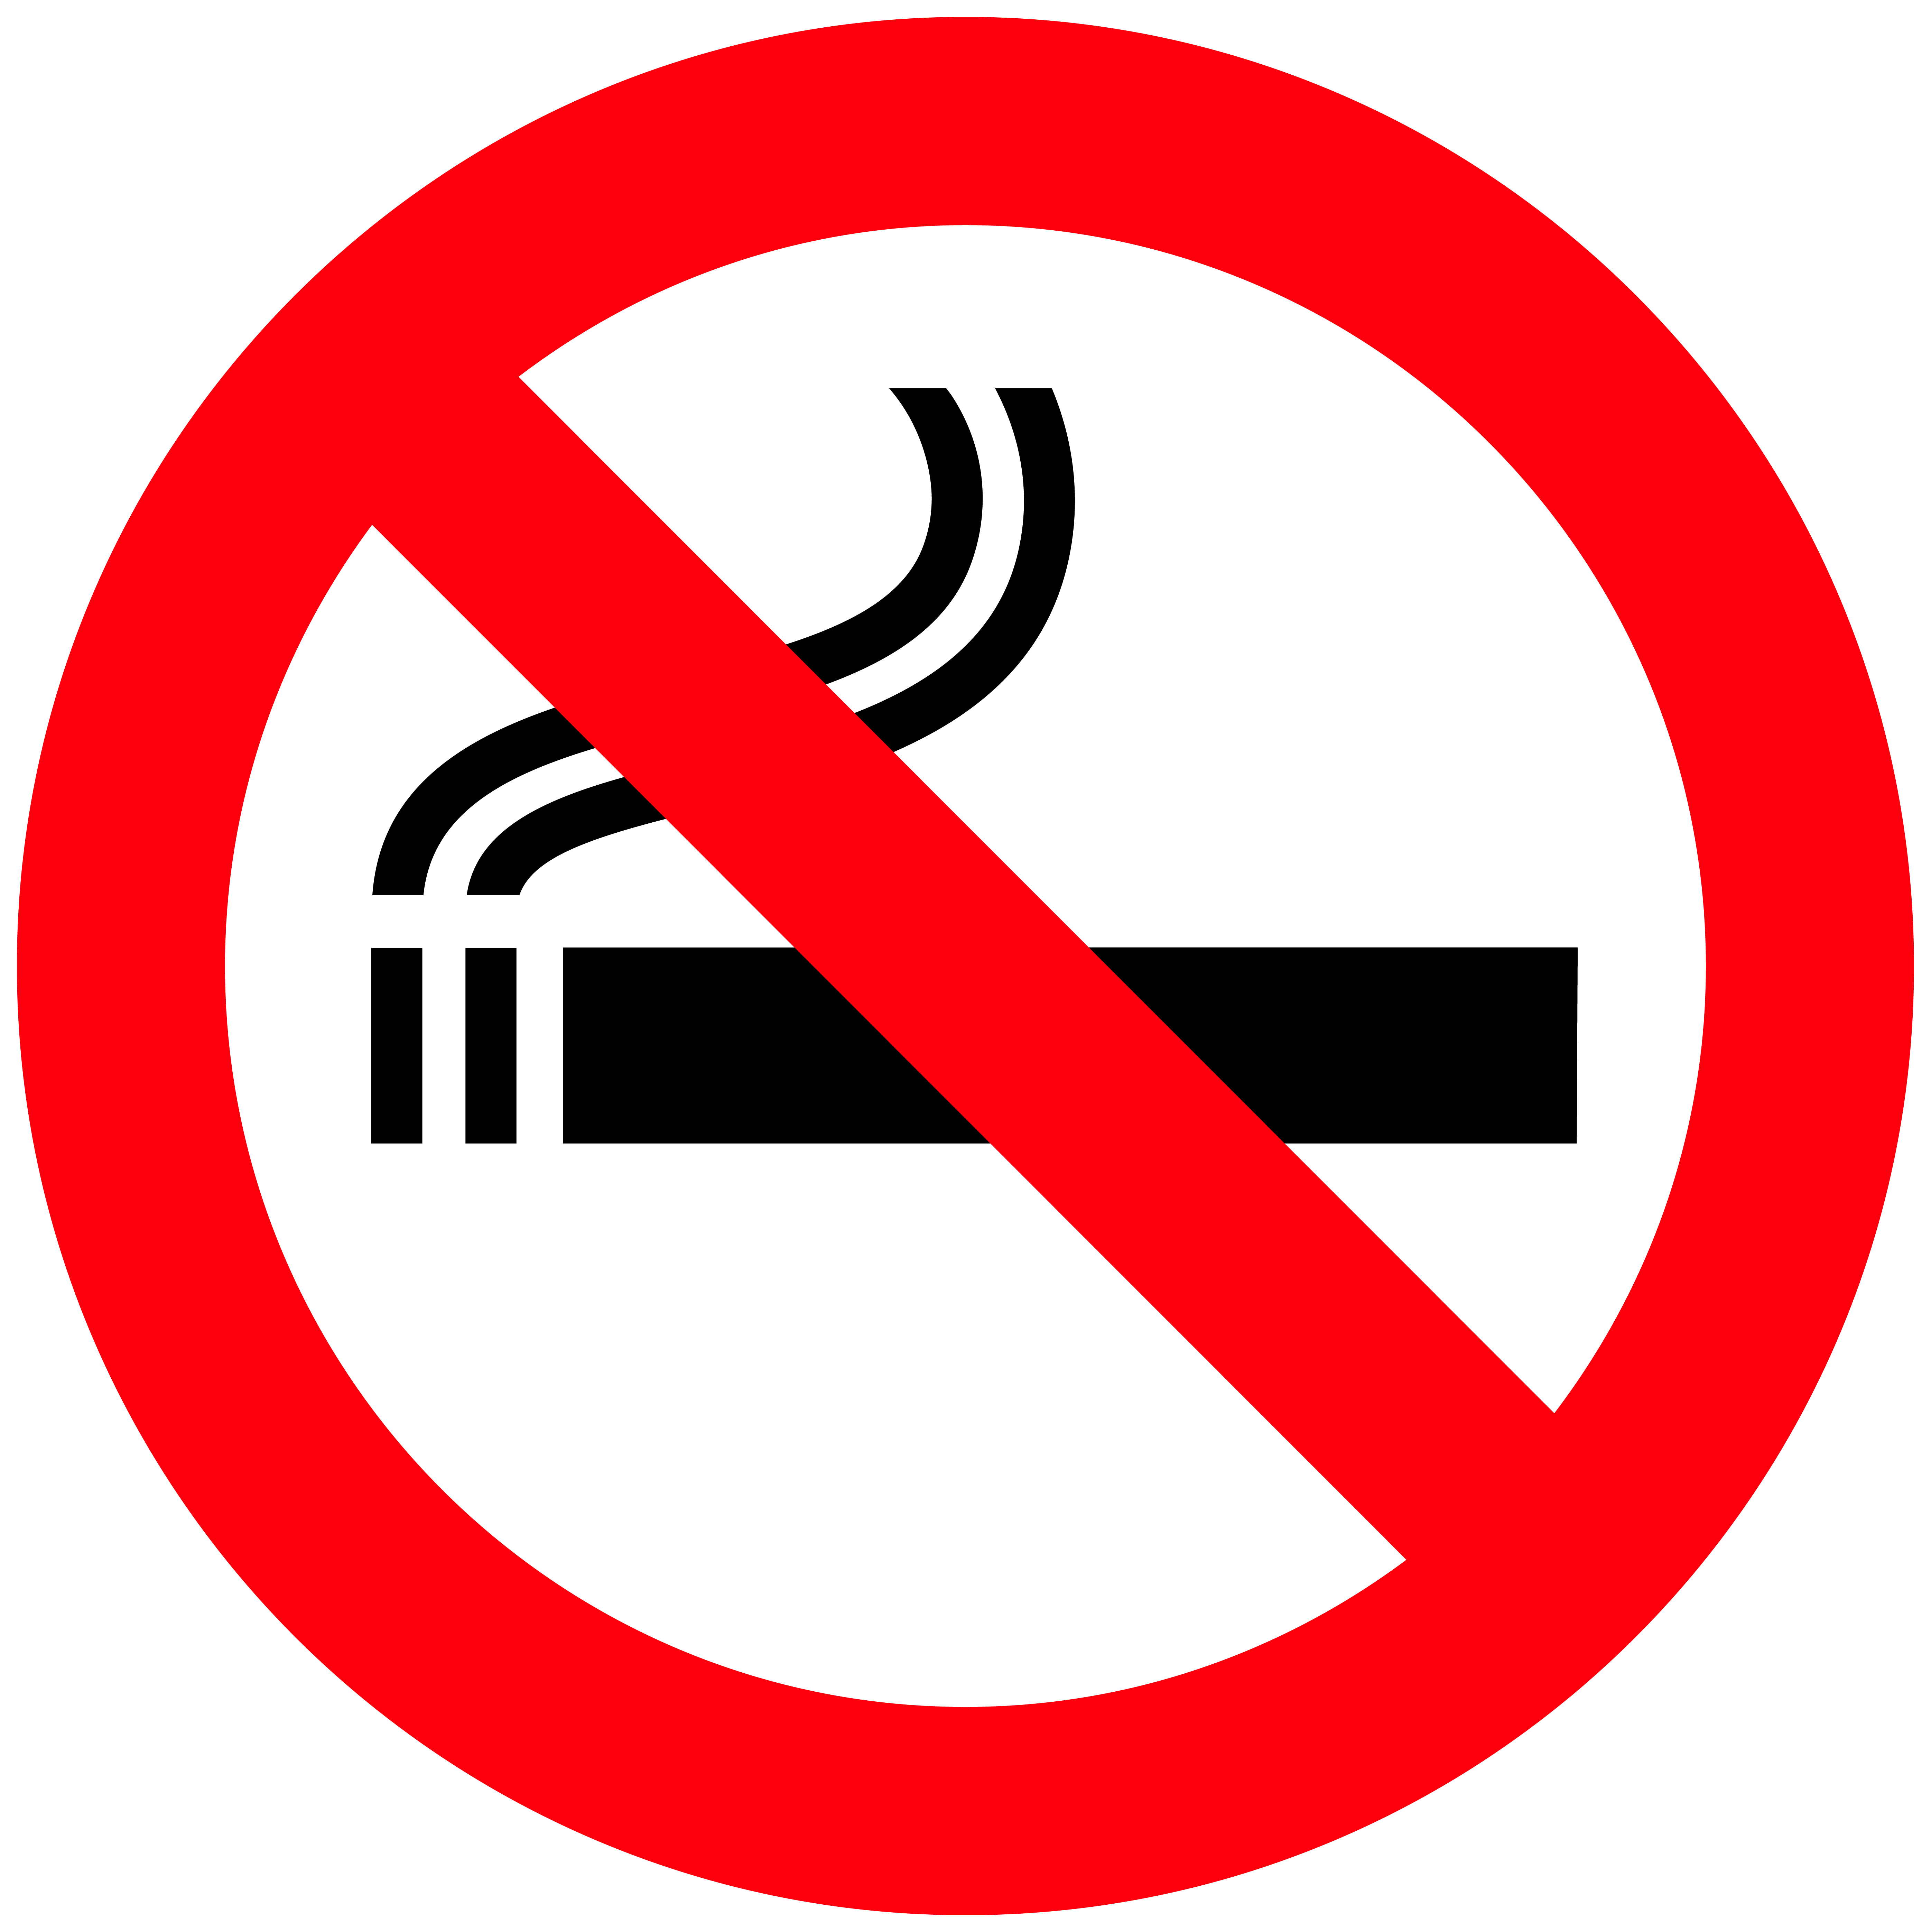 No smoke signs clipart best - Logo interdiction de fumer ...